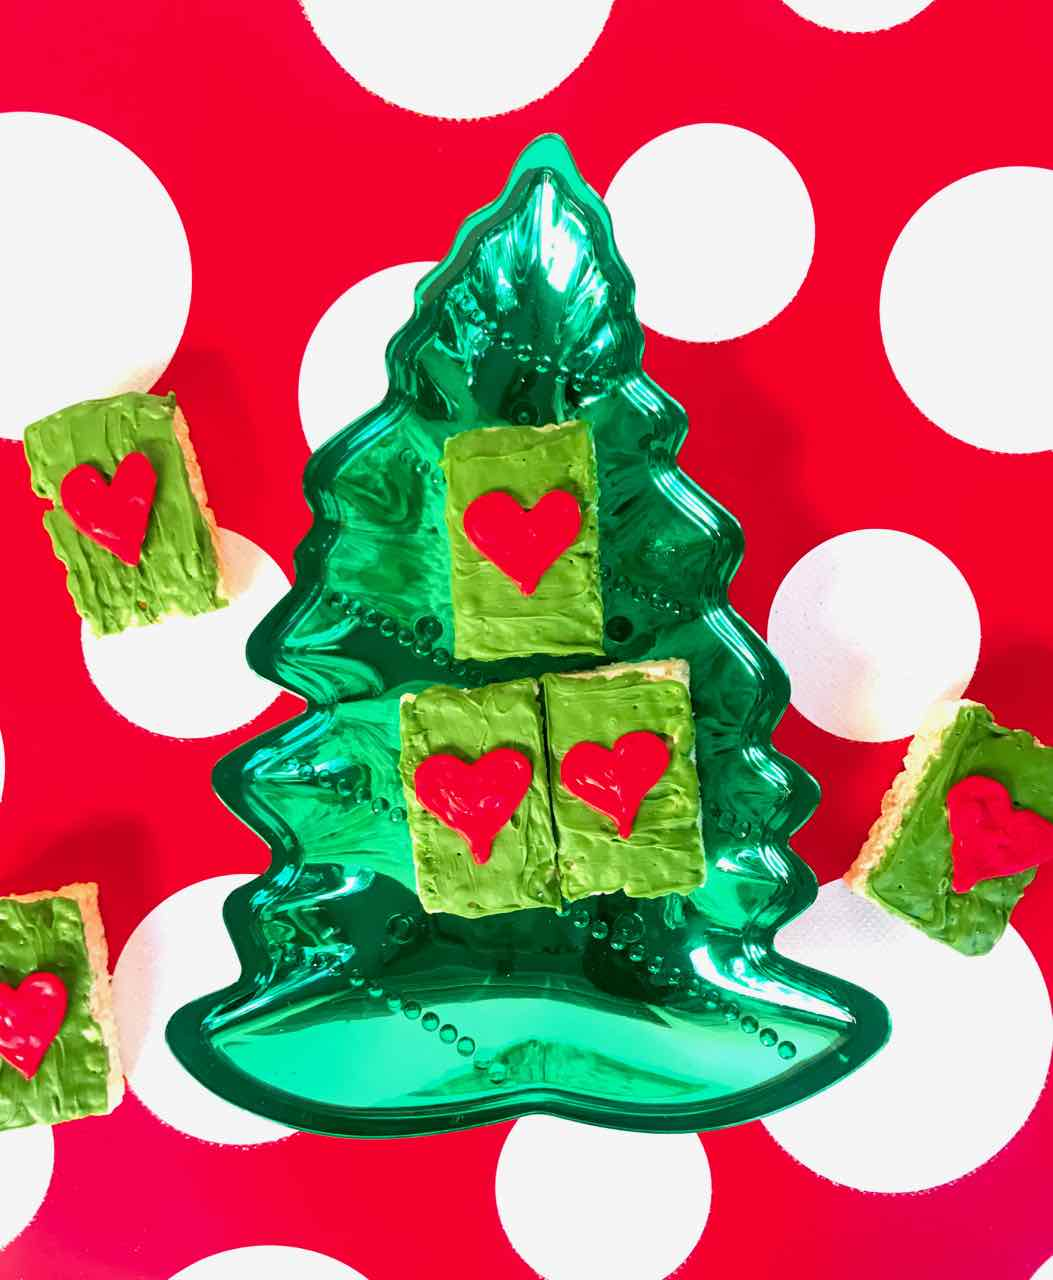 Would you like to make the perfect treat to eat while watching a favorite Christmas movie The Grinch? Make these quick and easy Grinch Treats!